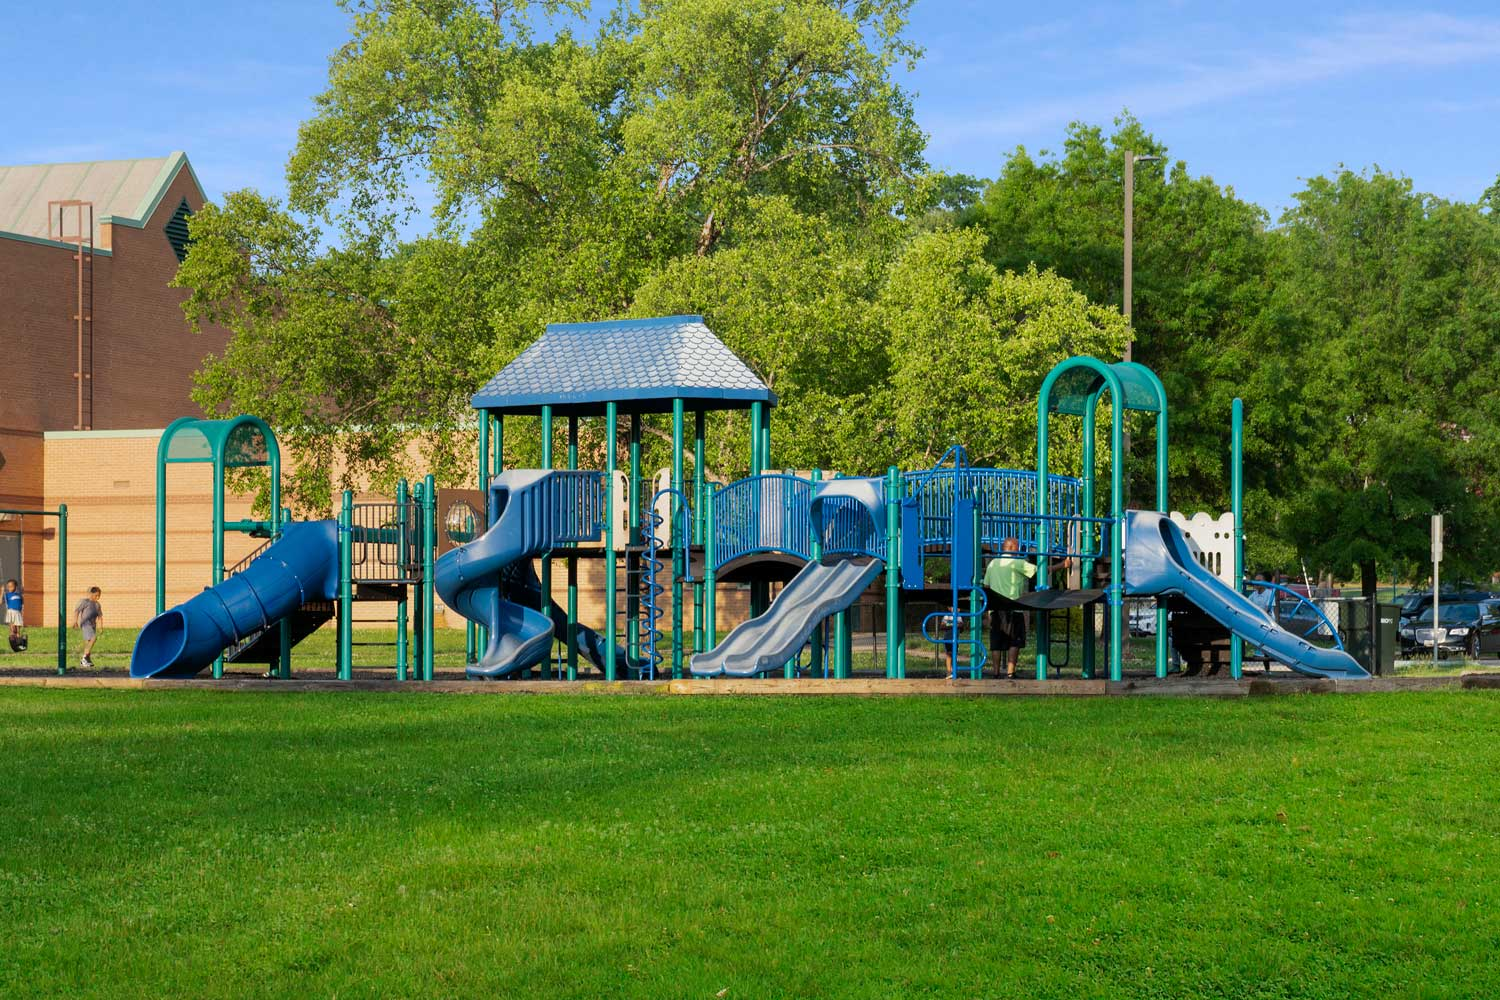 Play area 5 minutes from Top of the Hill Apartments in Temple Hills, MD